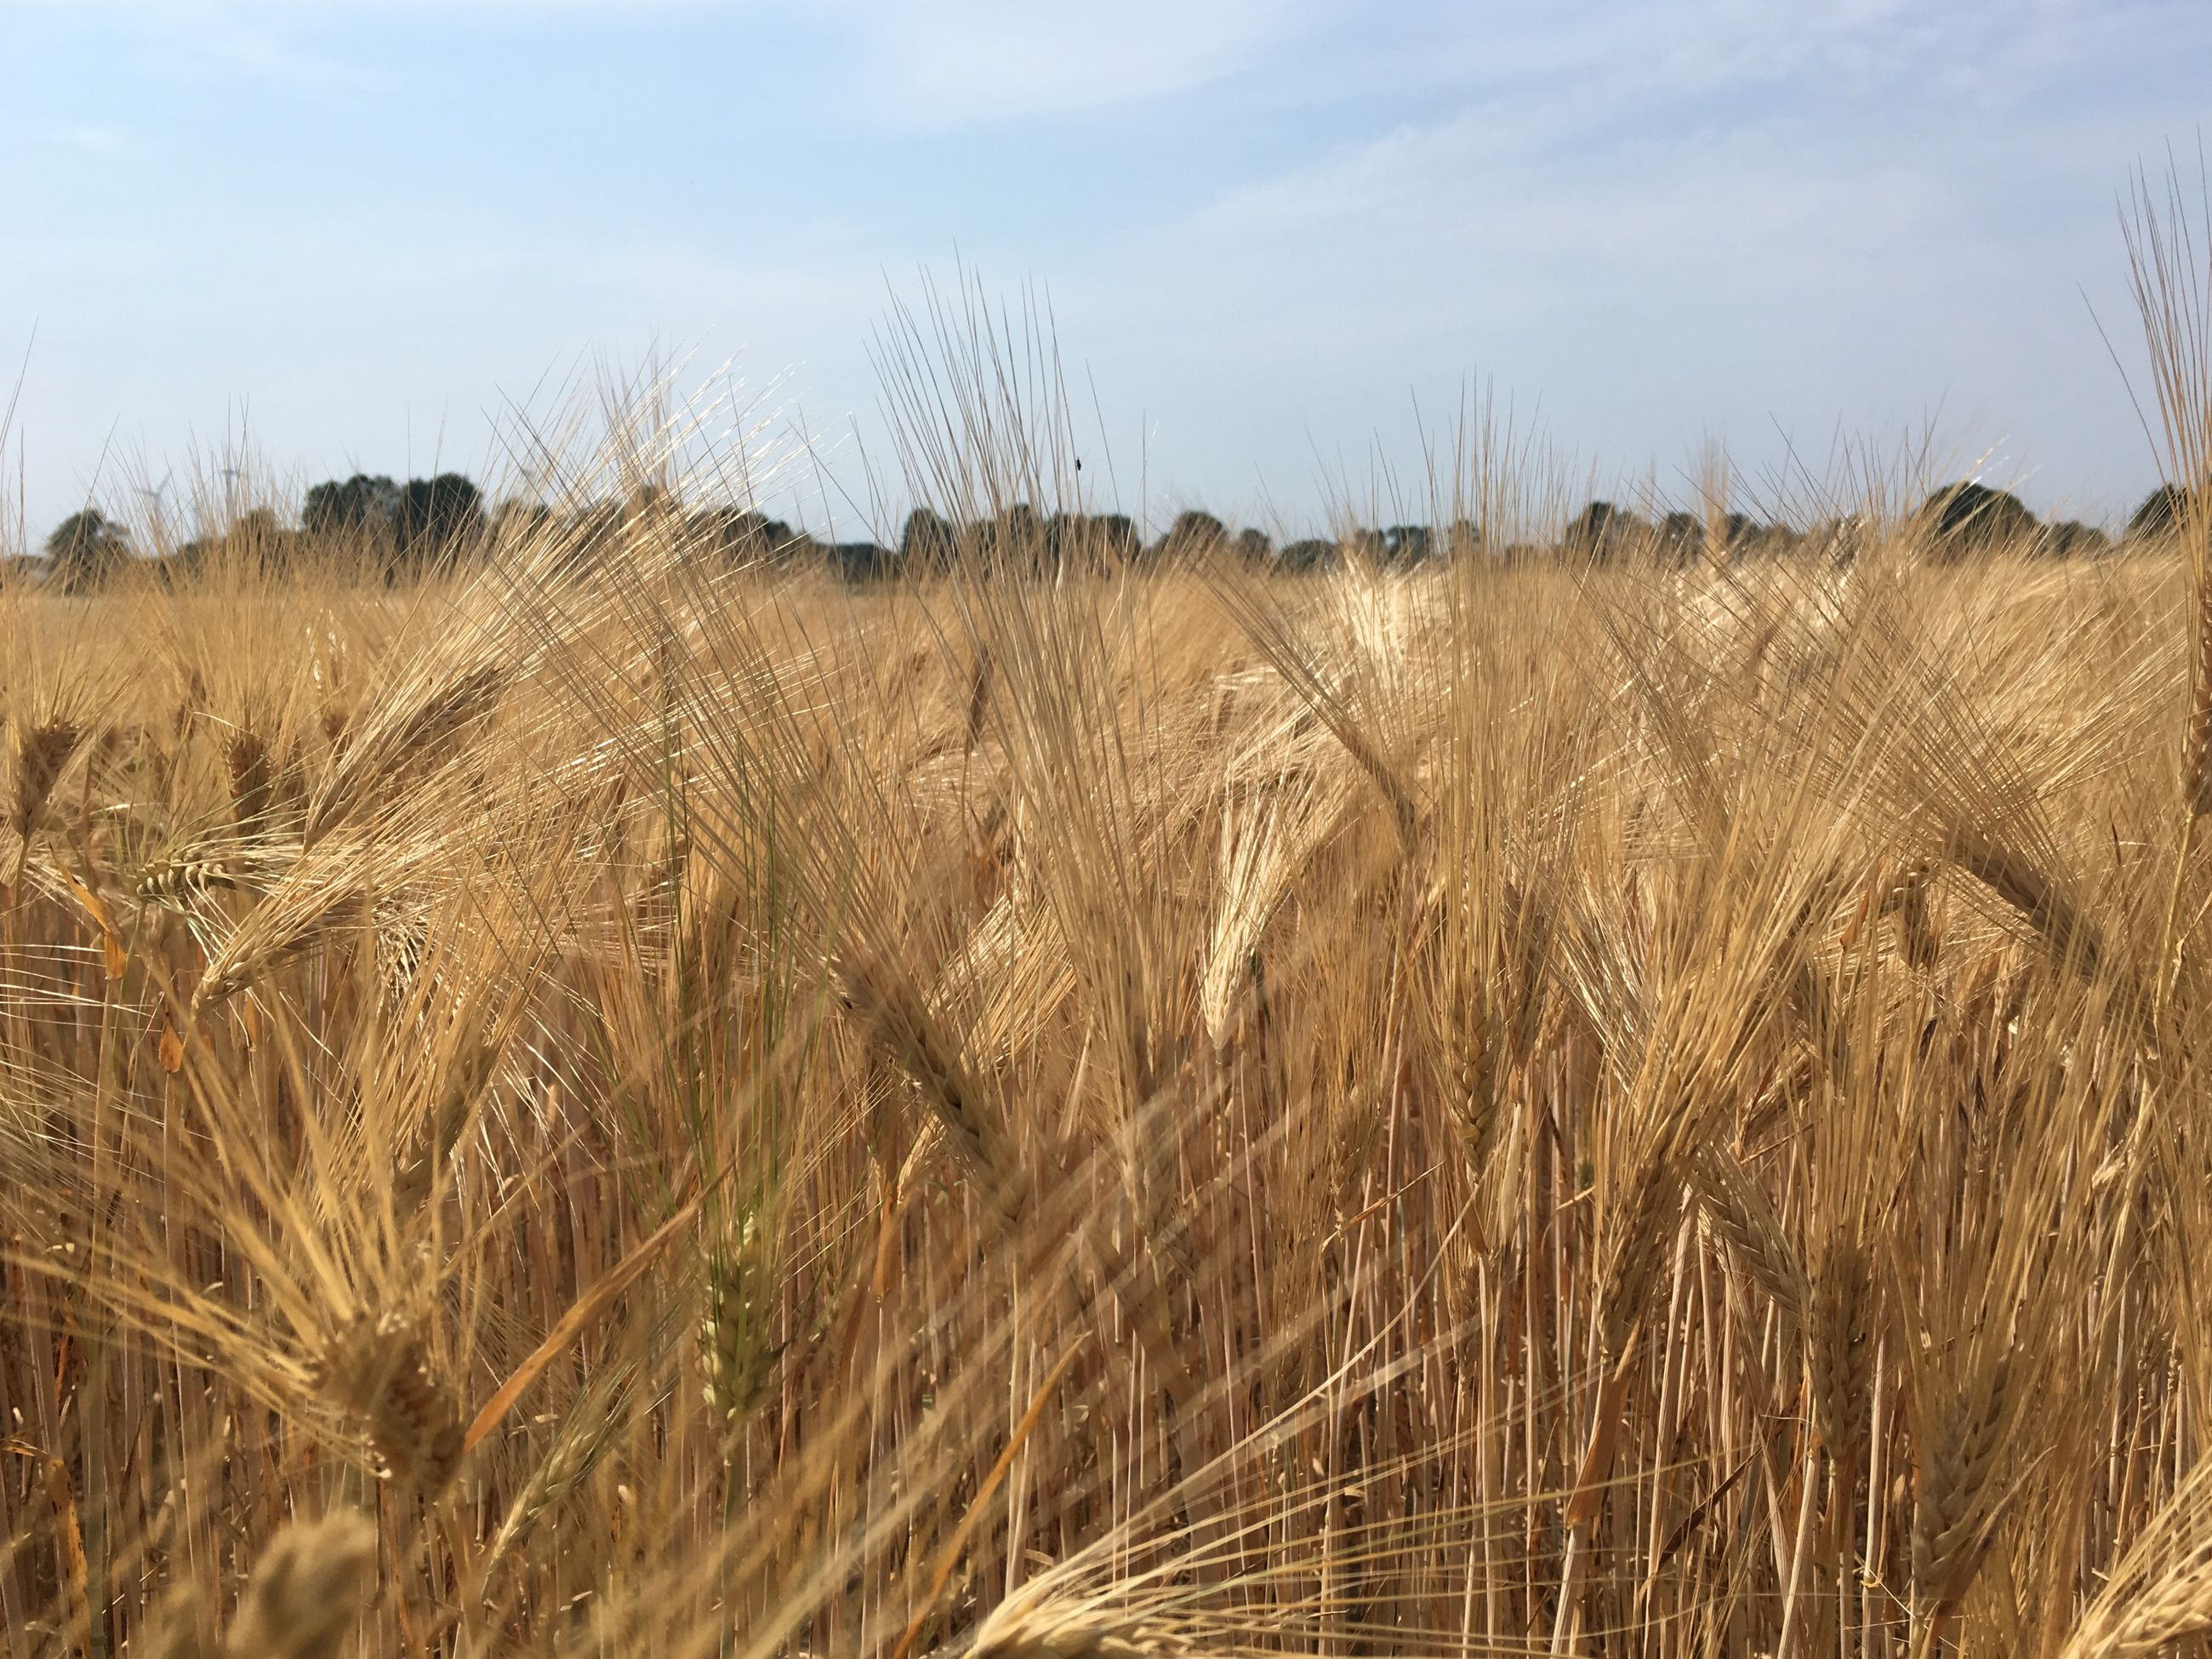 SCENIC SHOT OF WHEAT FIELD AGAINST SKY